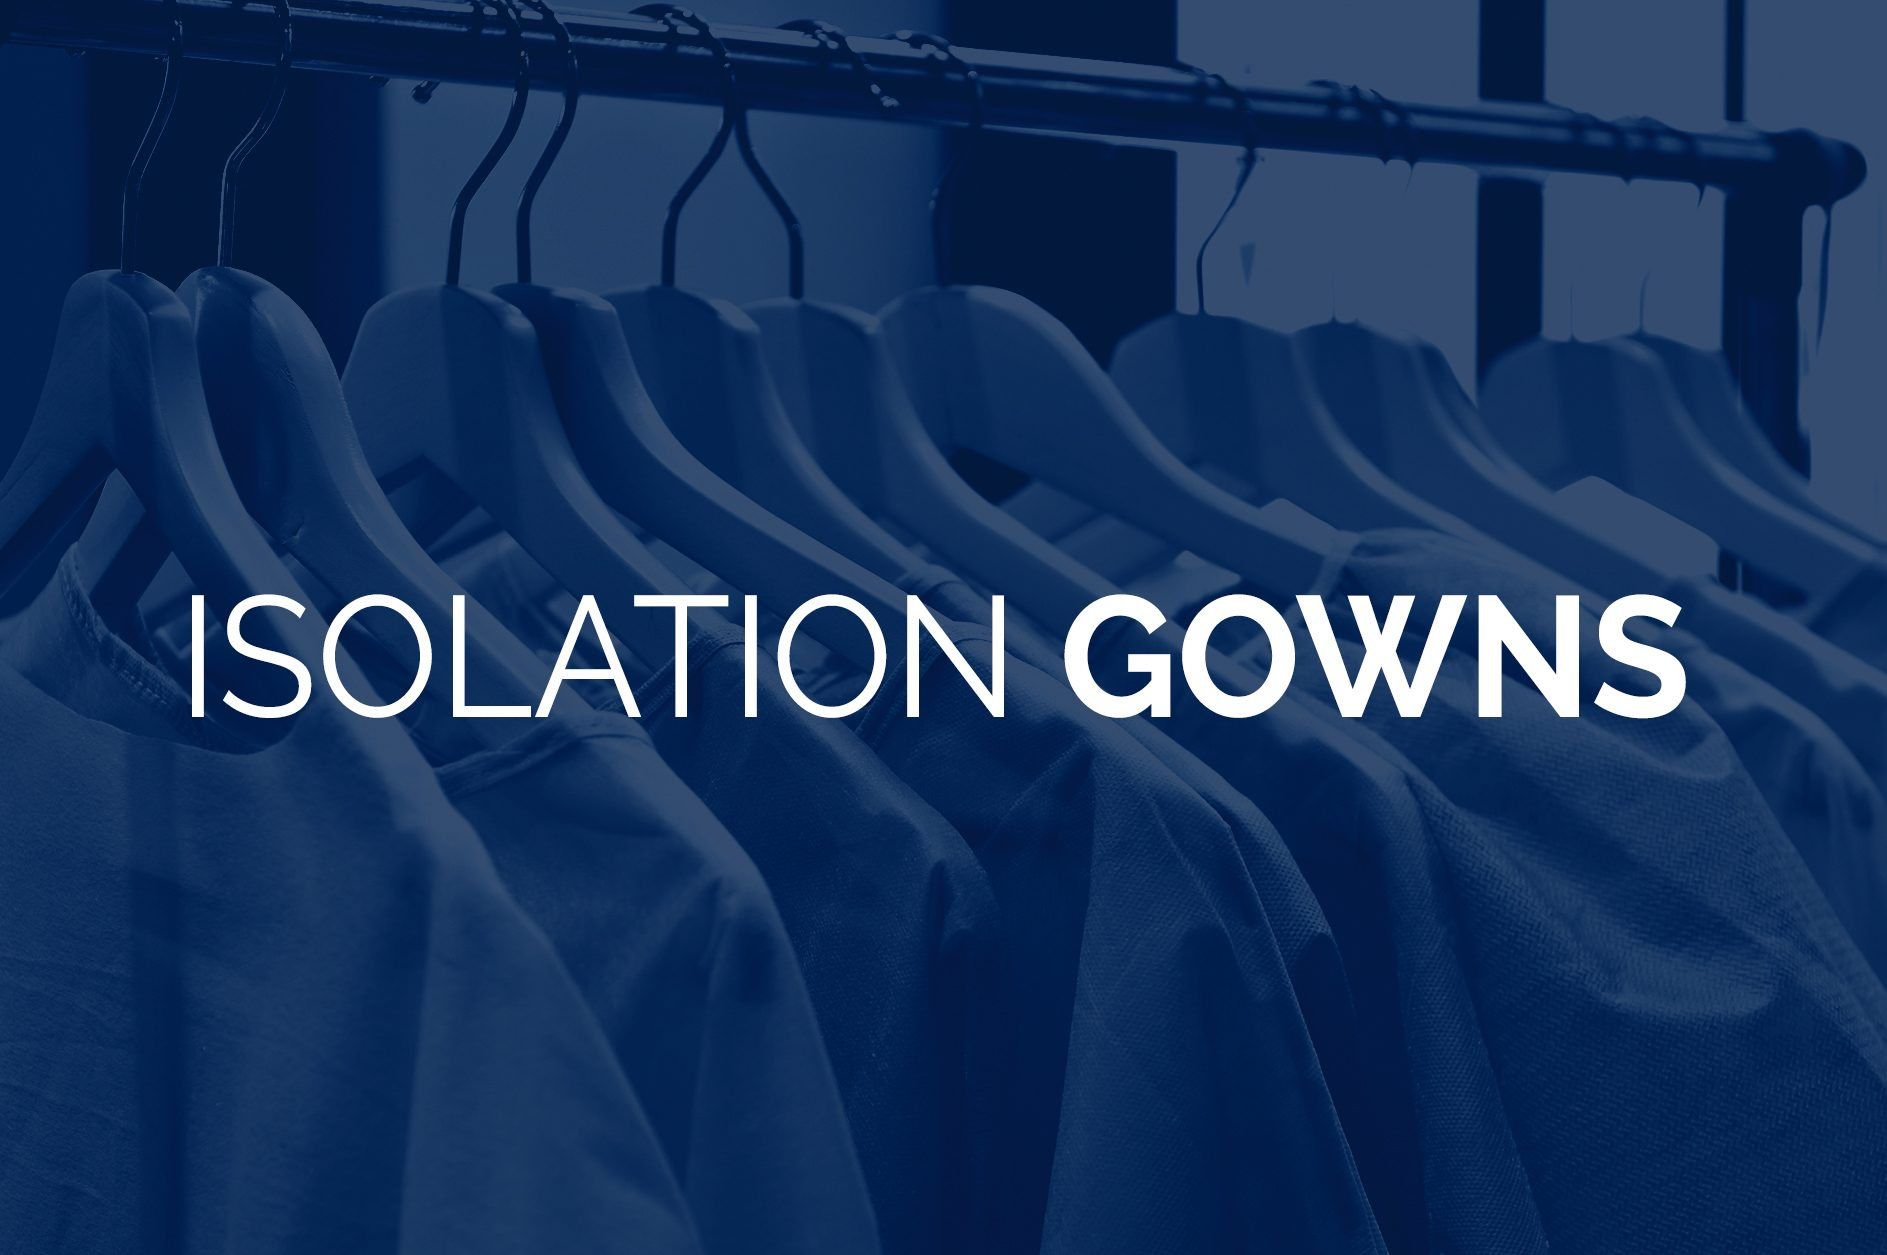 Medical Isolation Gowns